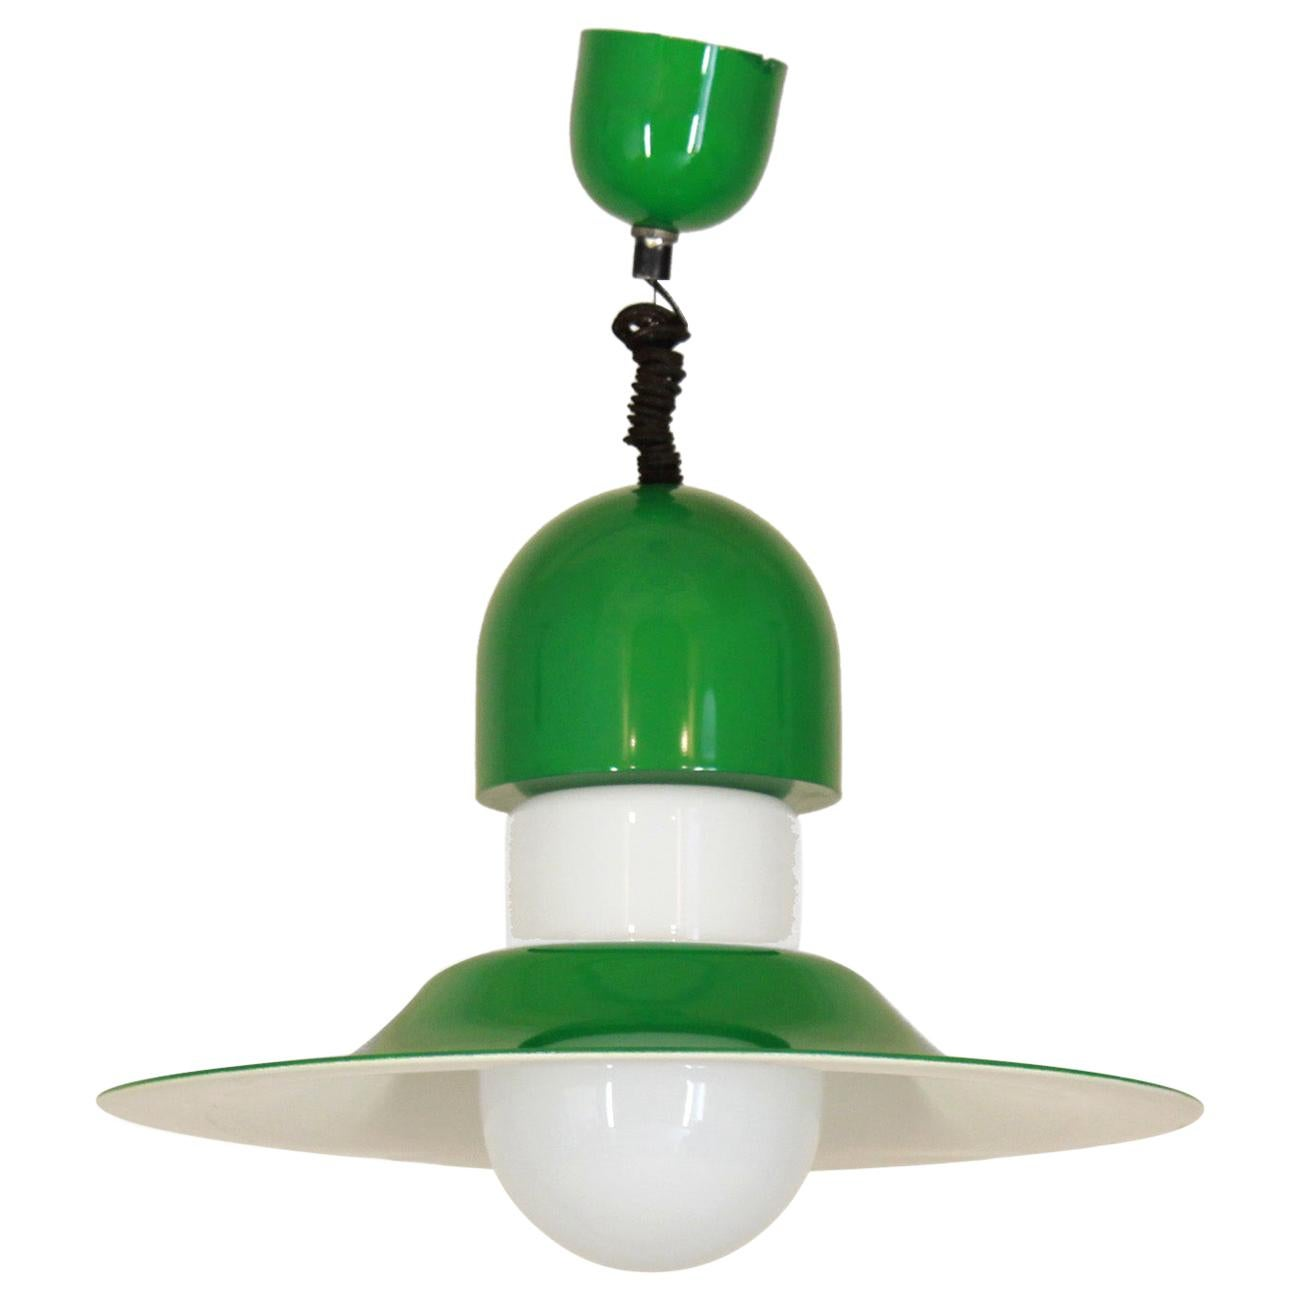 1970s Vintage Green Iron Pendant by Vico Magistretti for Artemide